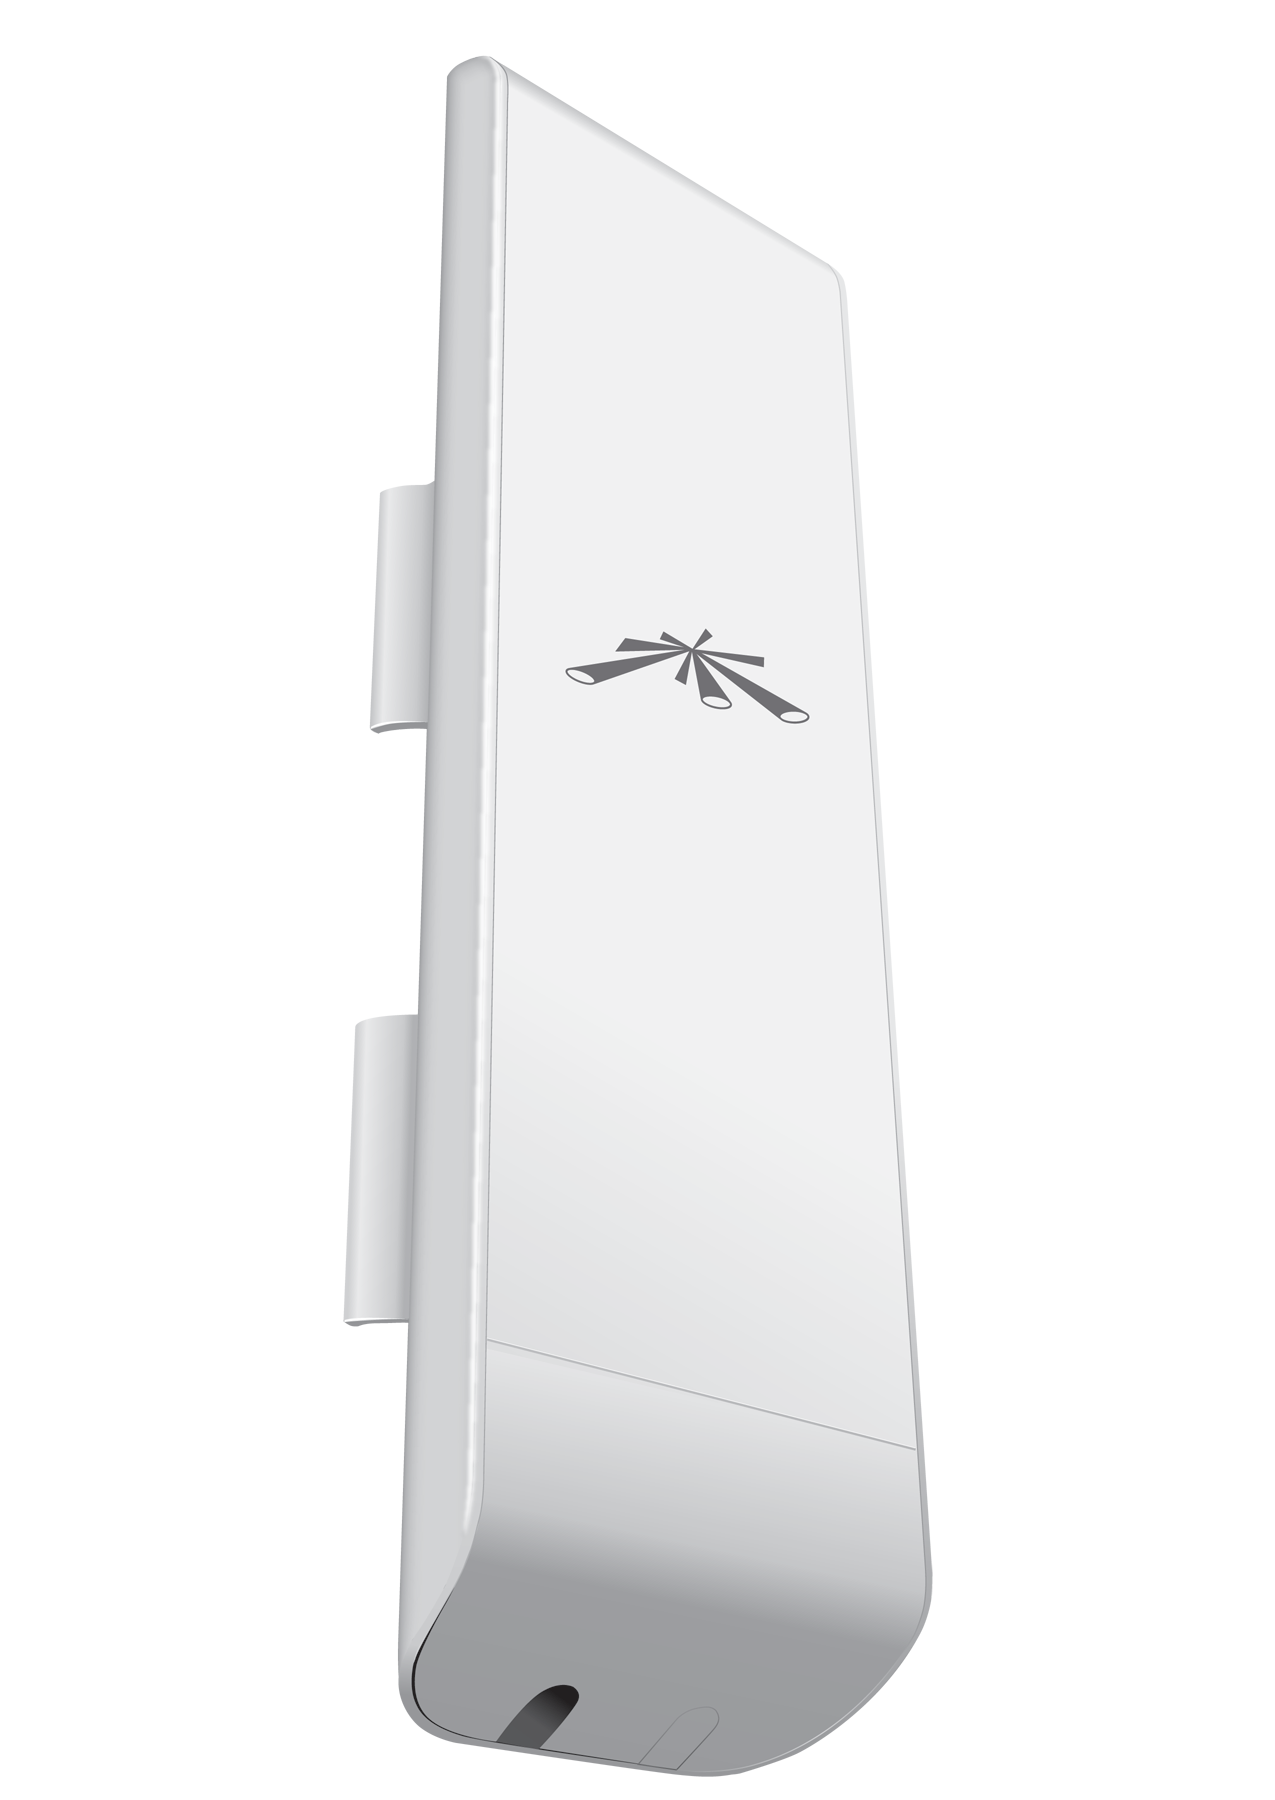 UBNT NanoStation M2 outdoor MIMO 2,4GHz 11dBi